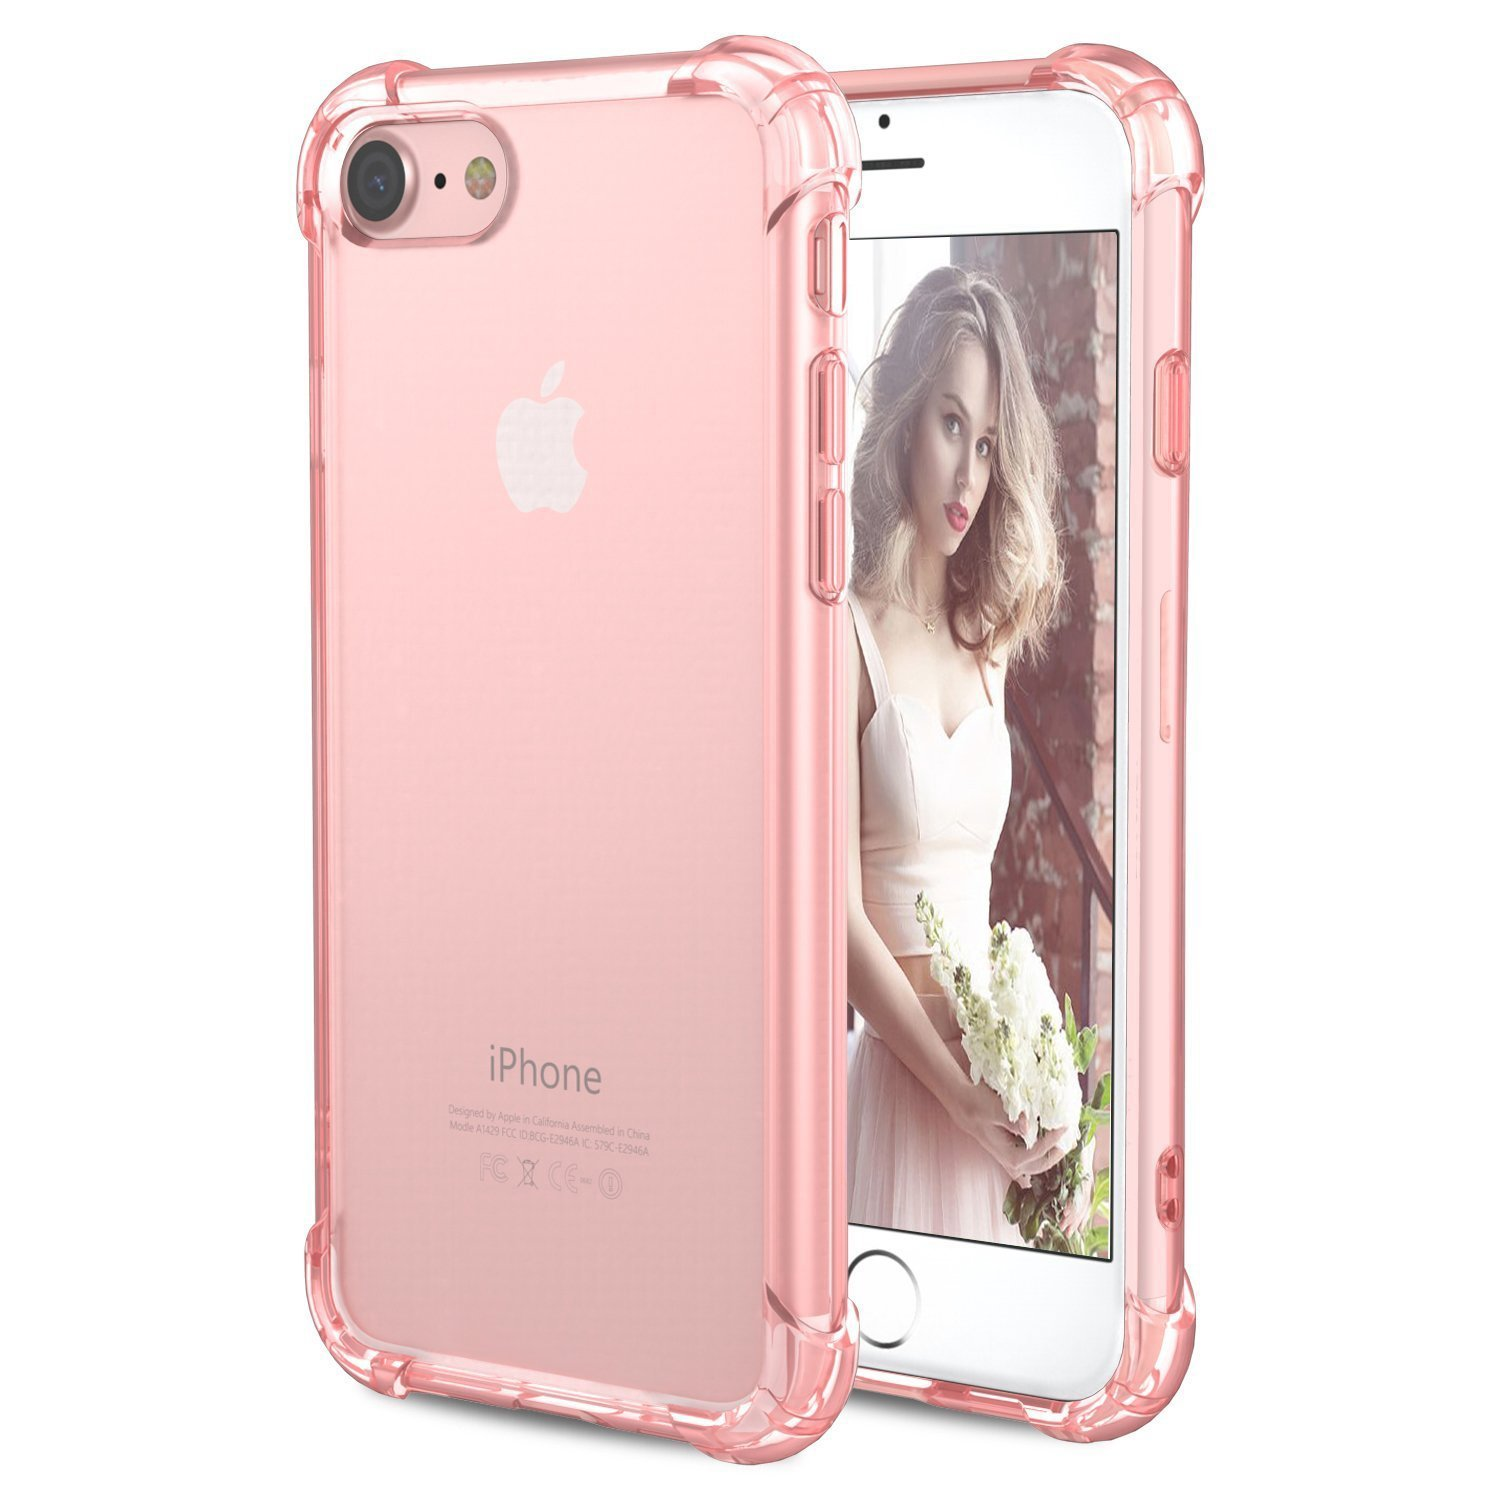 hanluckystars coque iphone 7